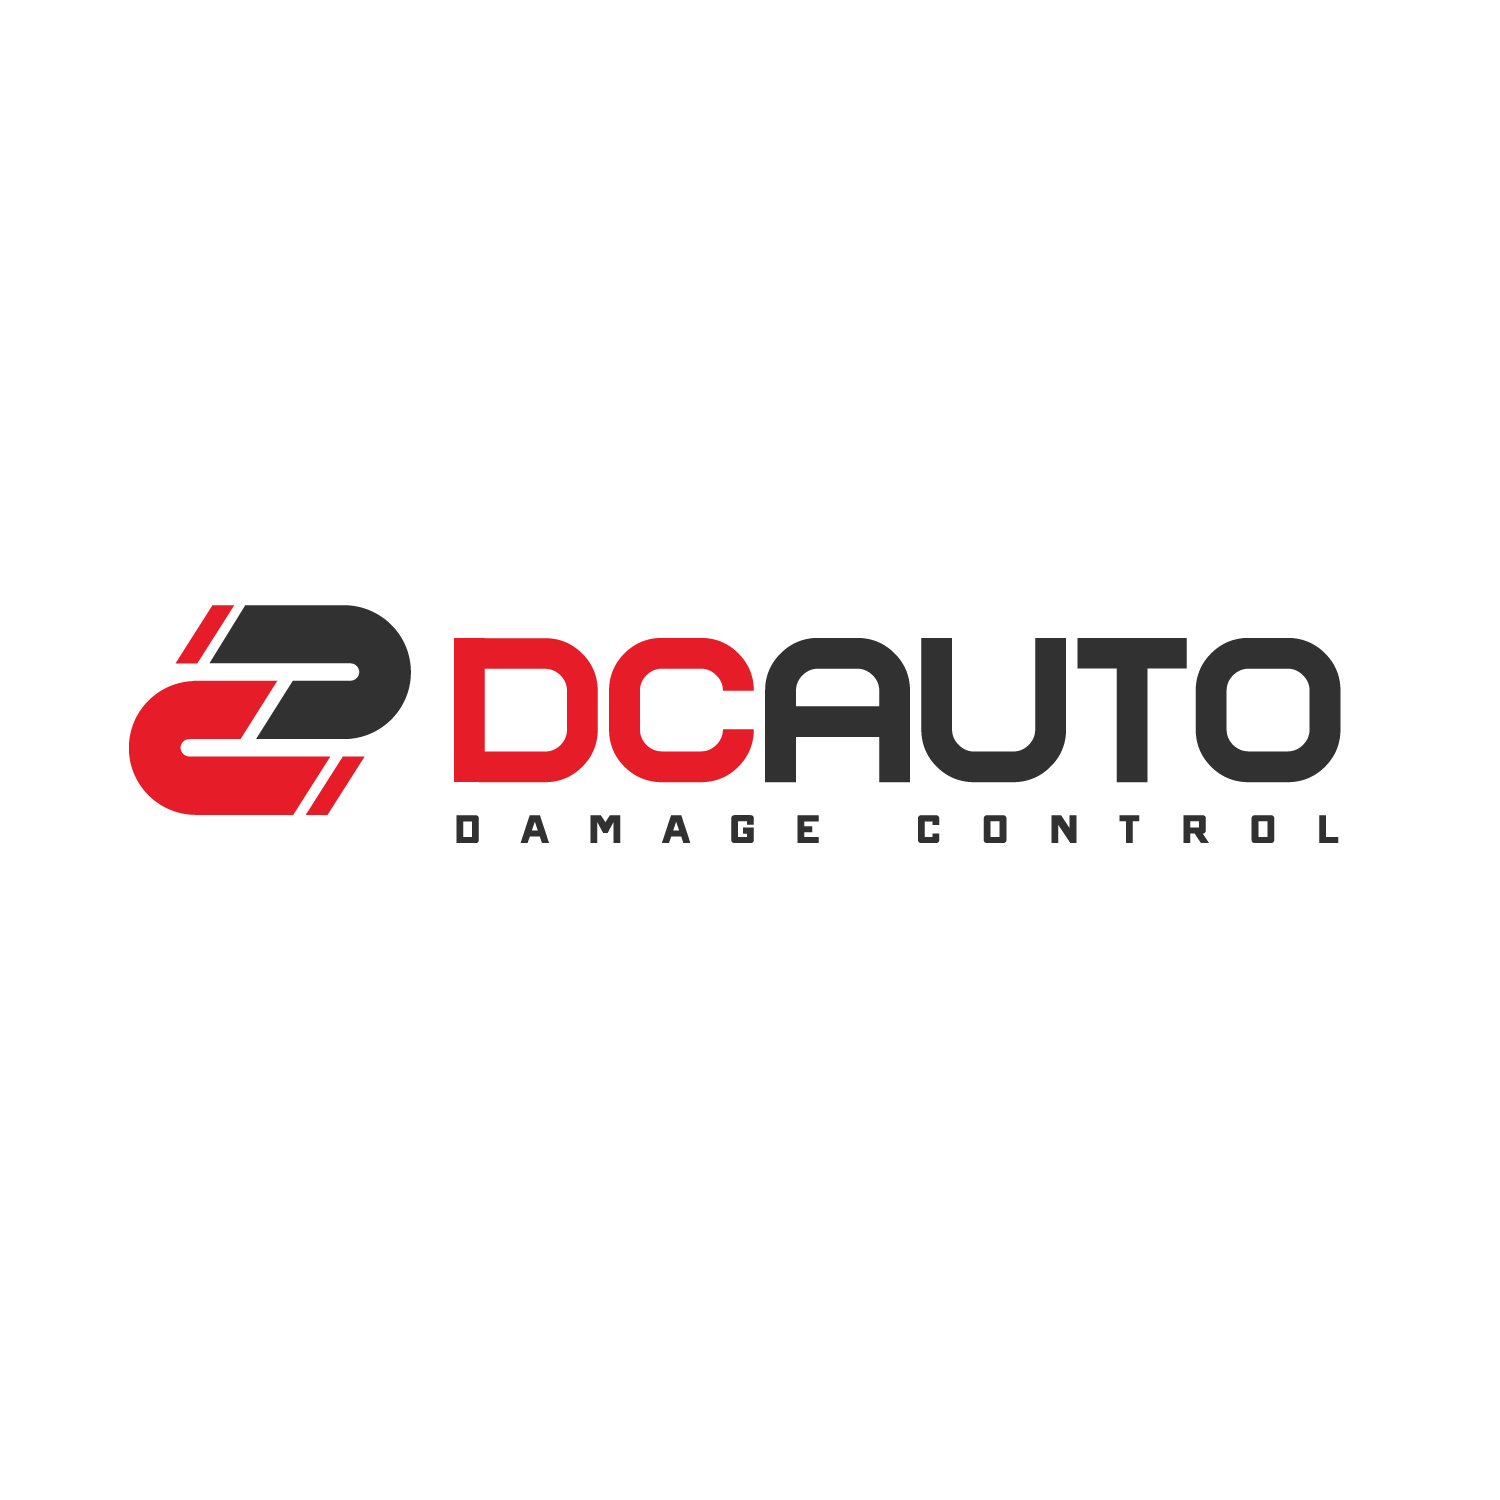 Design a bold and catchy logo for DC Auto